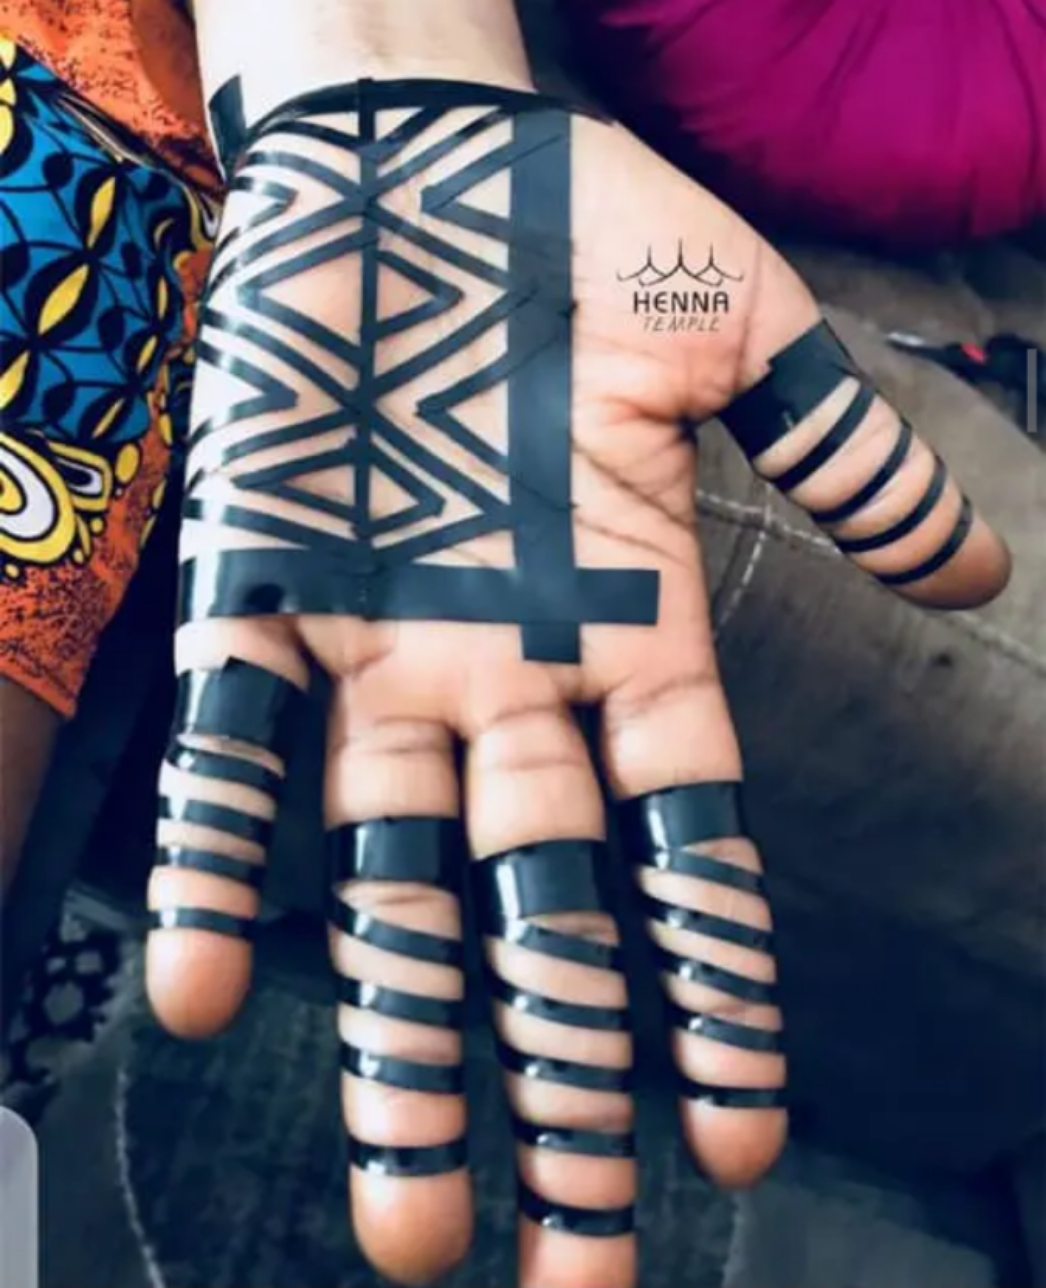 NEW SYLES: 10 New Henna Fashion Design For Upcoming Ceremonies Chick events